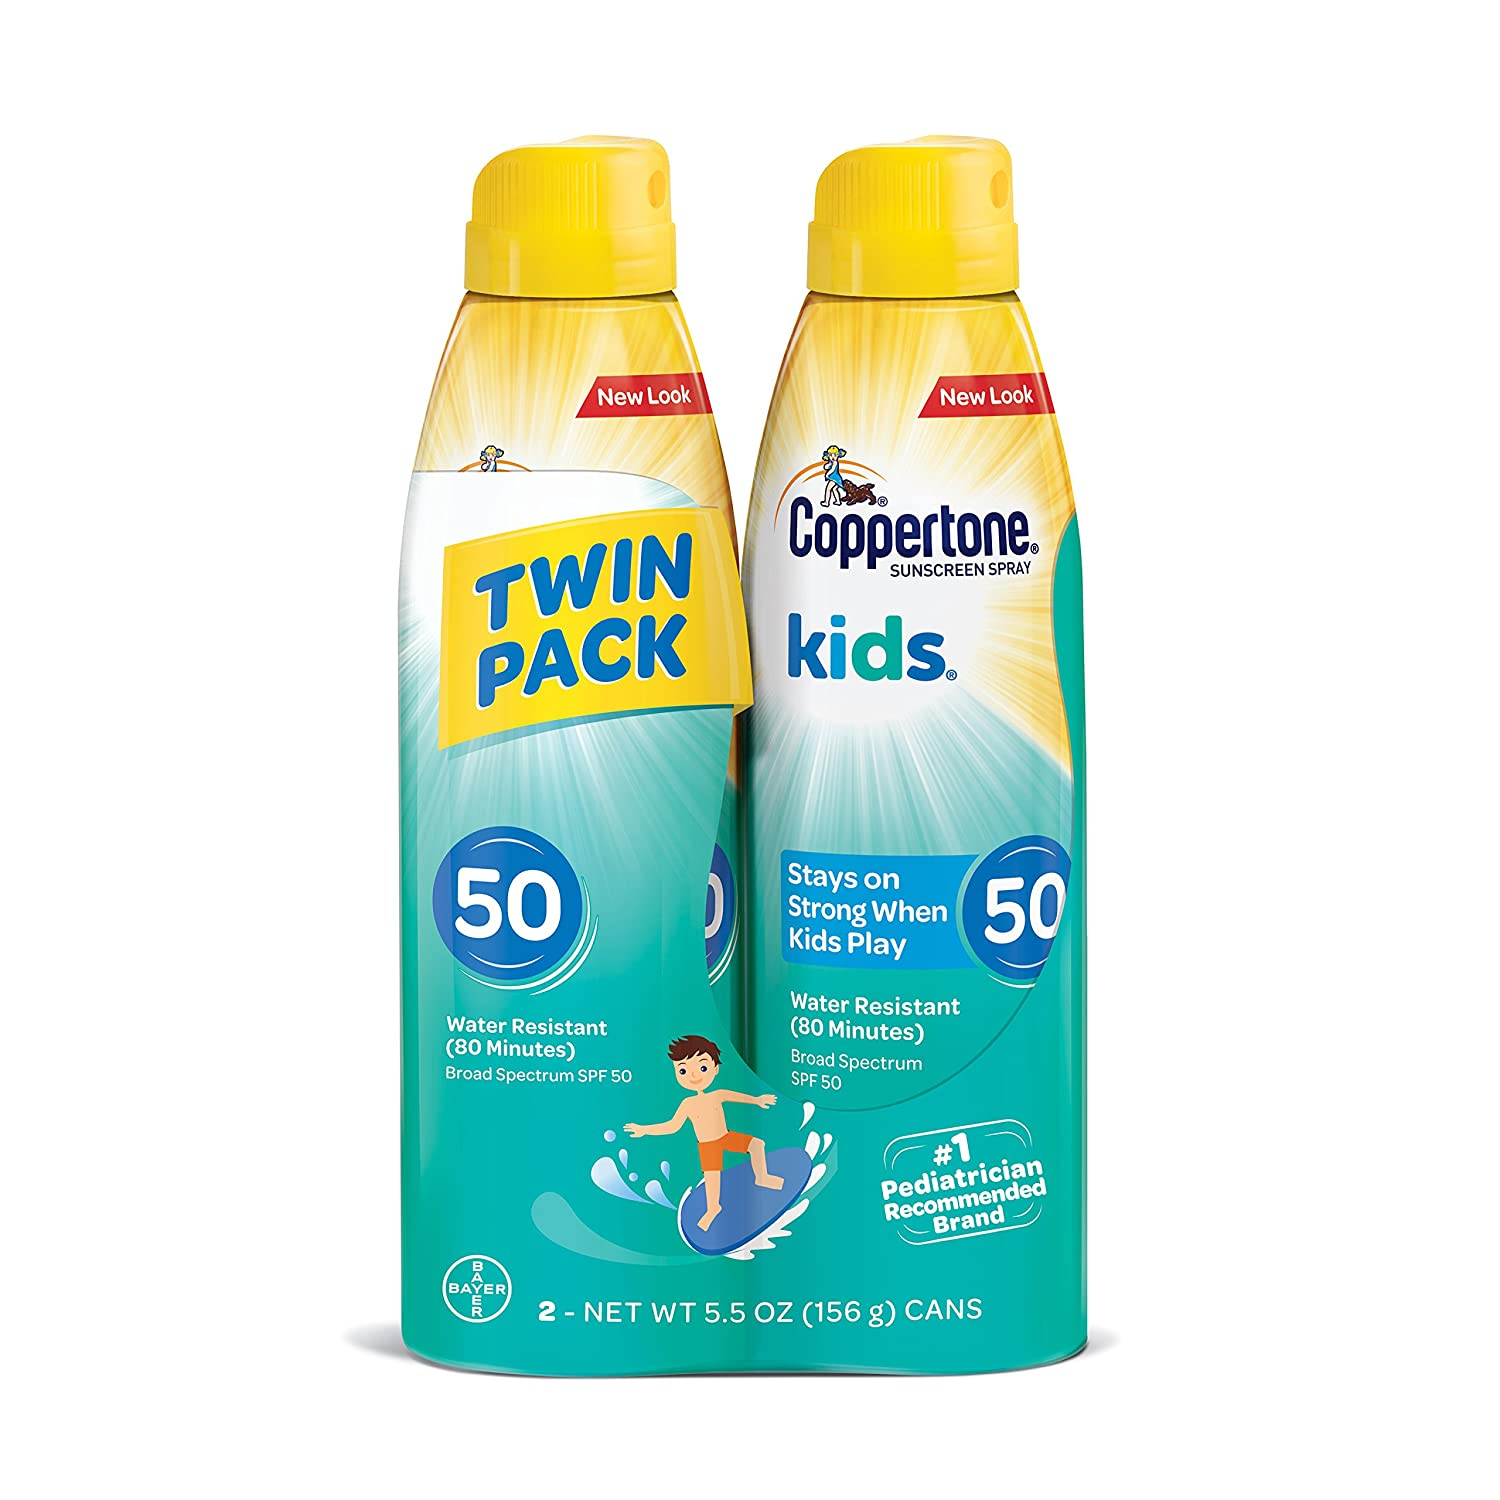 Coppertone KIDS Sunscreen Continuous Spray SPF 50 (5.5 Ounce, Pack of 2) (Packaging may vary), White